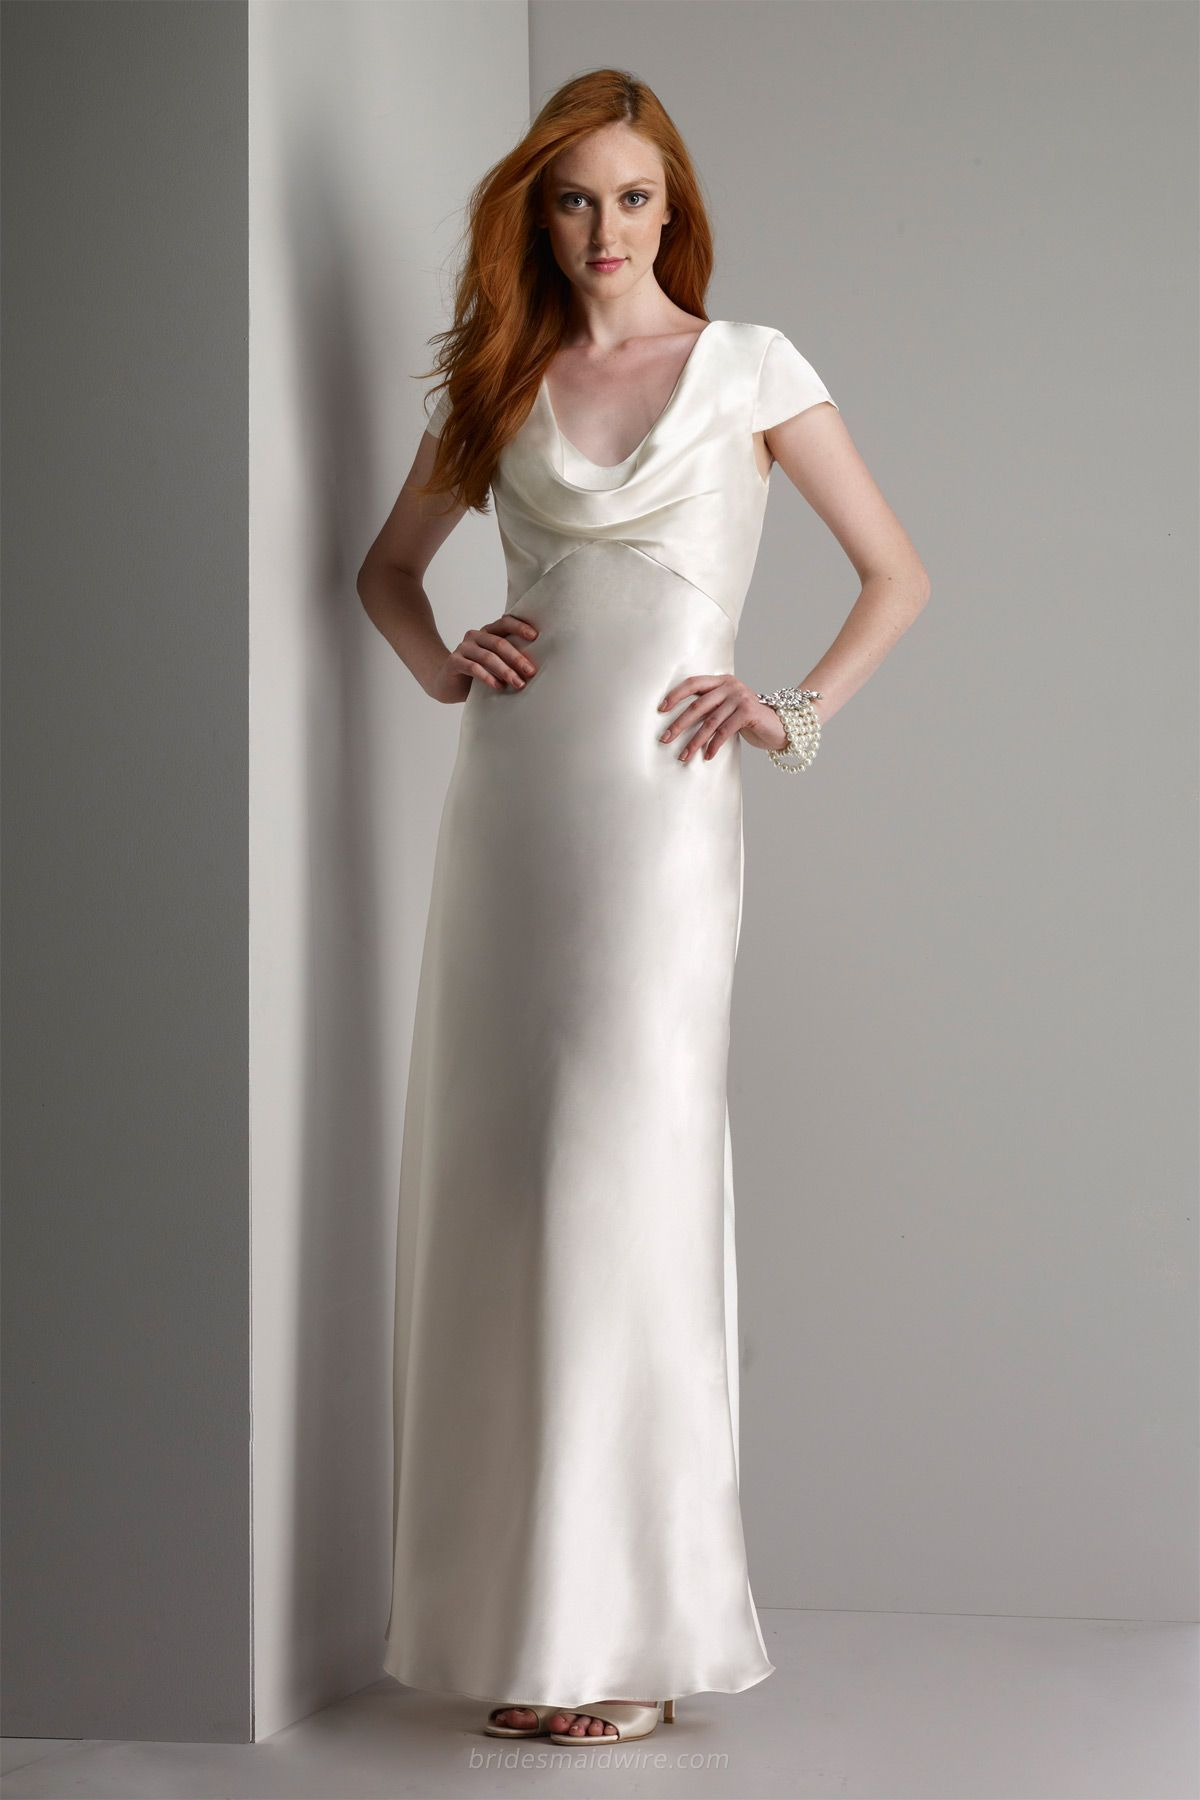 Cowl Neckline Ivory Long Evening Bridesmaids Gown Cropped